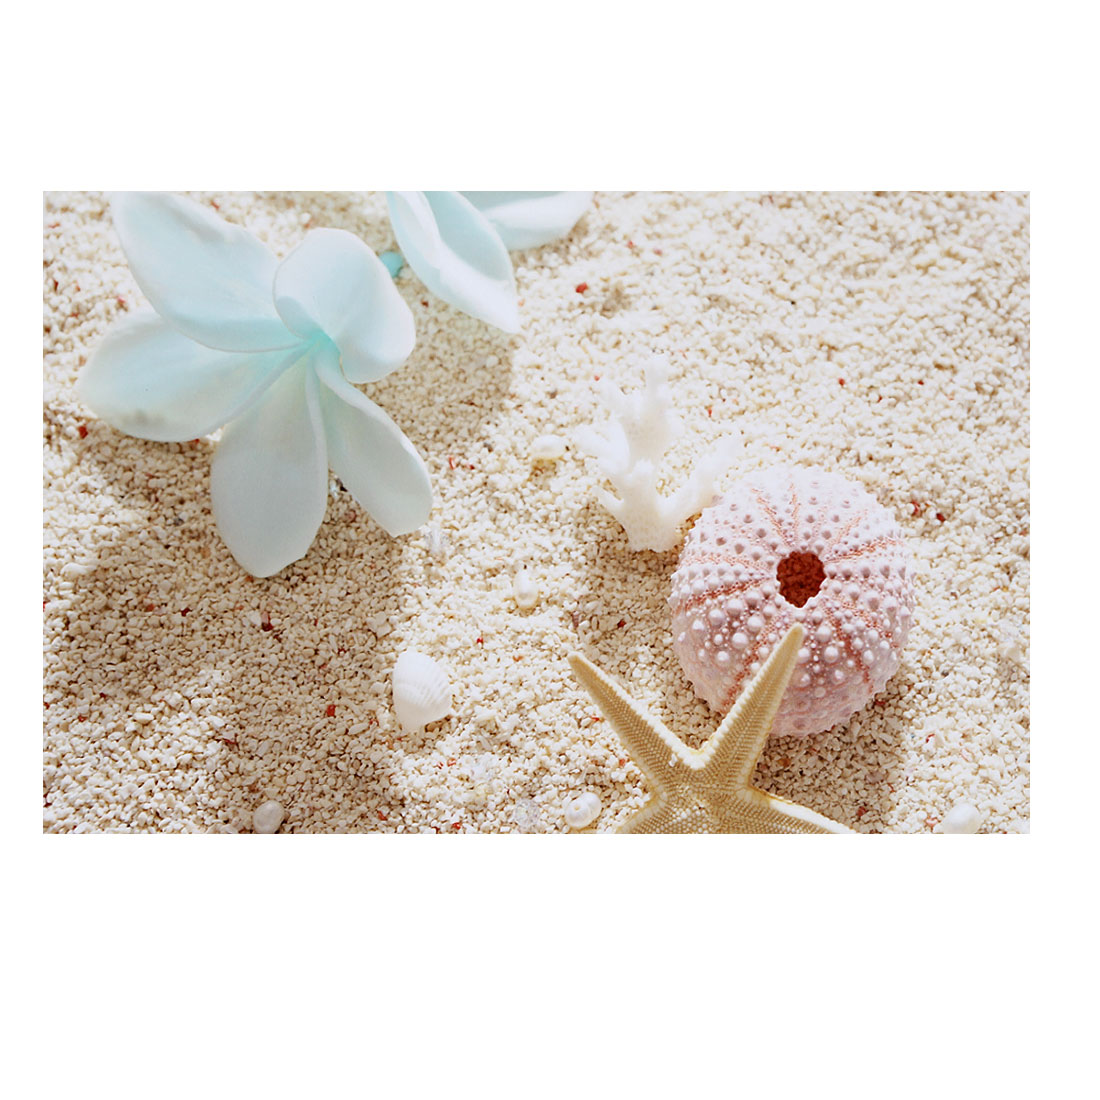 "White Flower Coral Beige Sand Seastar Decorative Sticker Decal for 14"" Laptop"